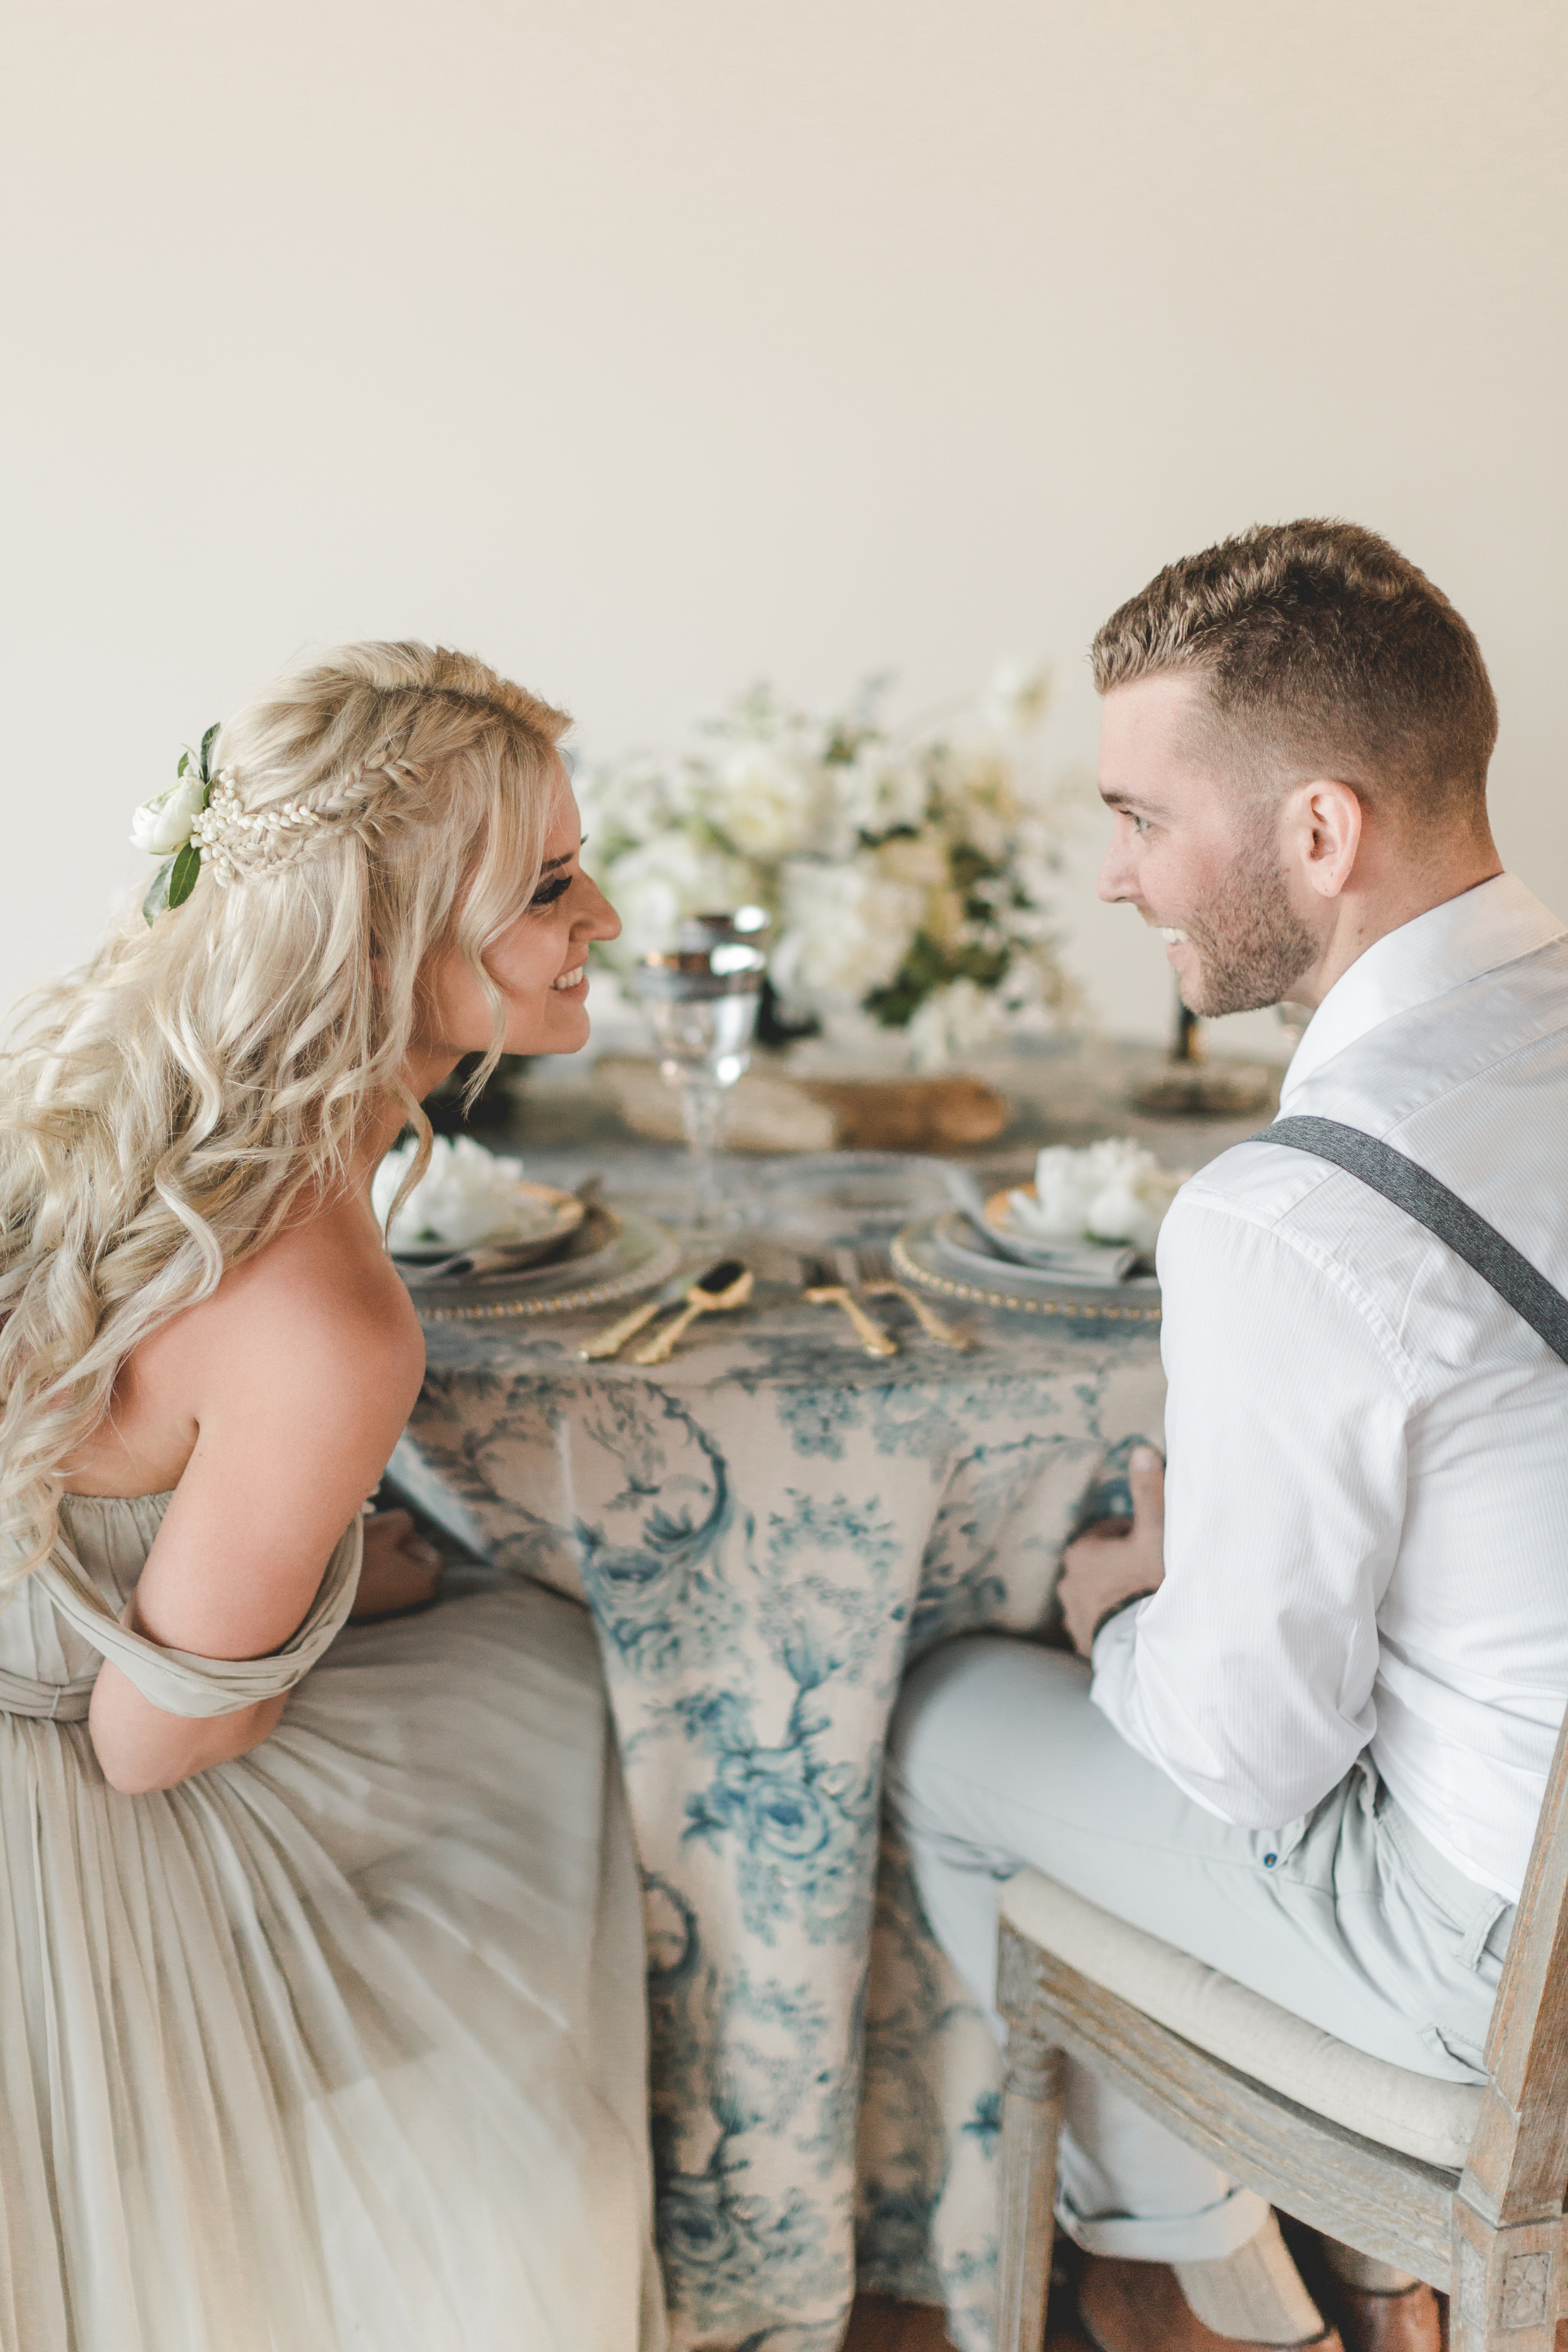 Whaling_Museum_Styled_Shoot_sweethearttable_4-19-16-27.jpg